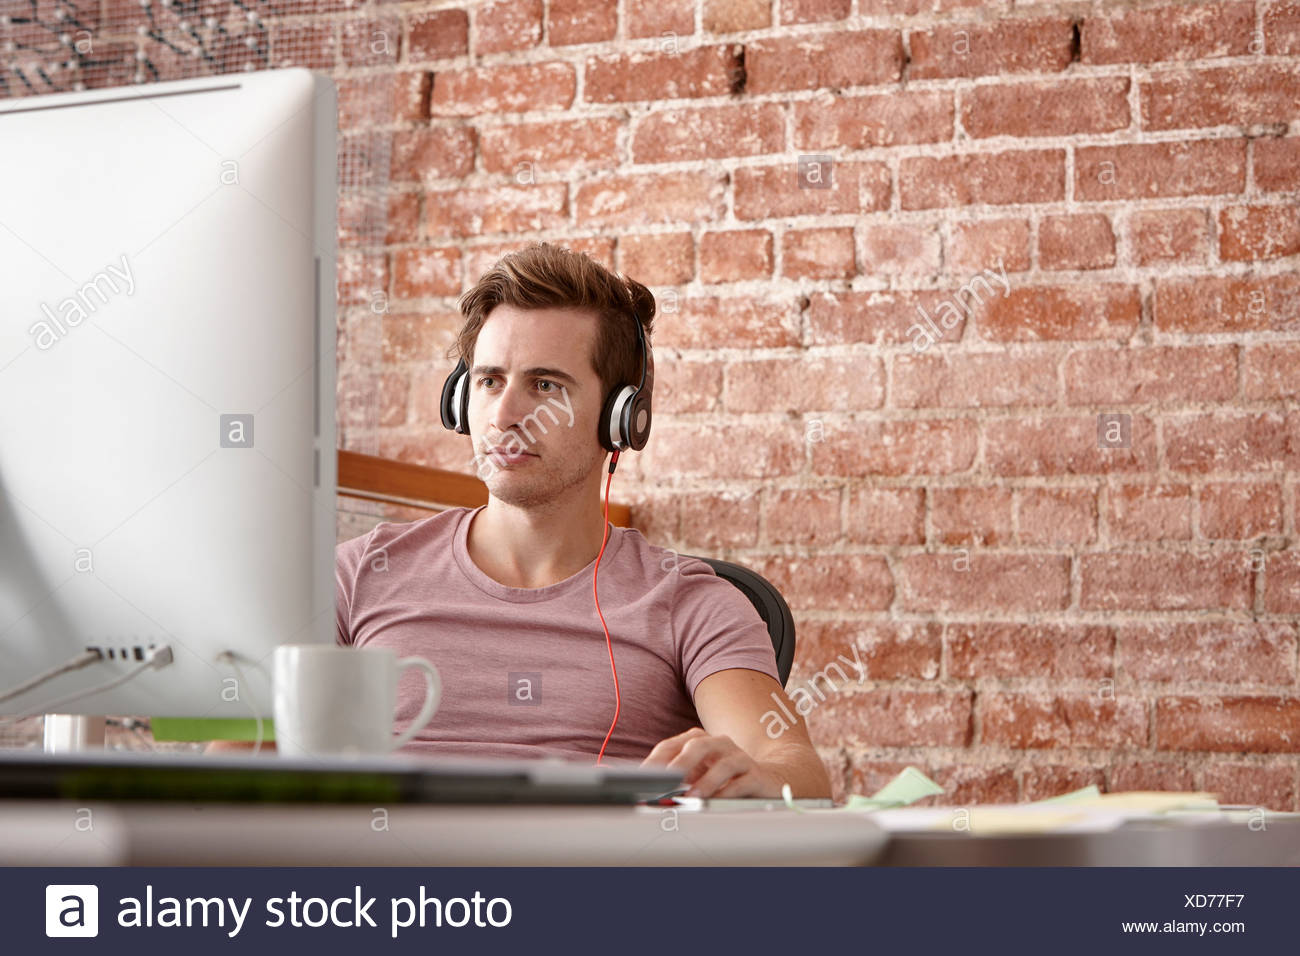 Young man using computer wearing headphones - Stock Image